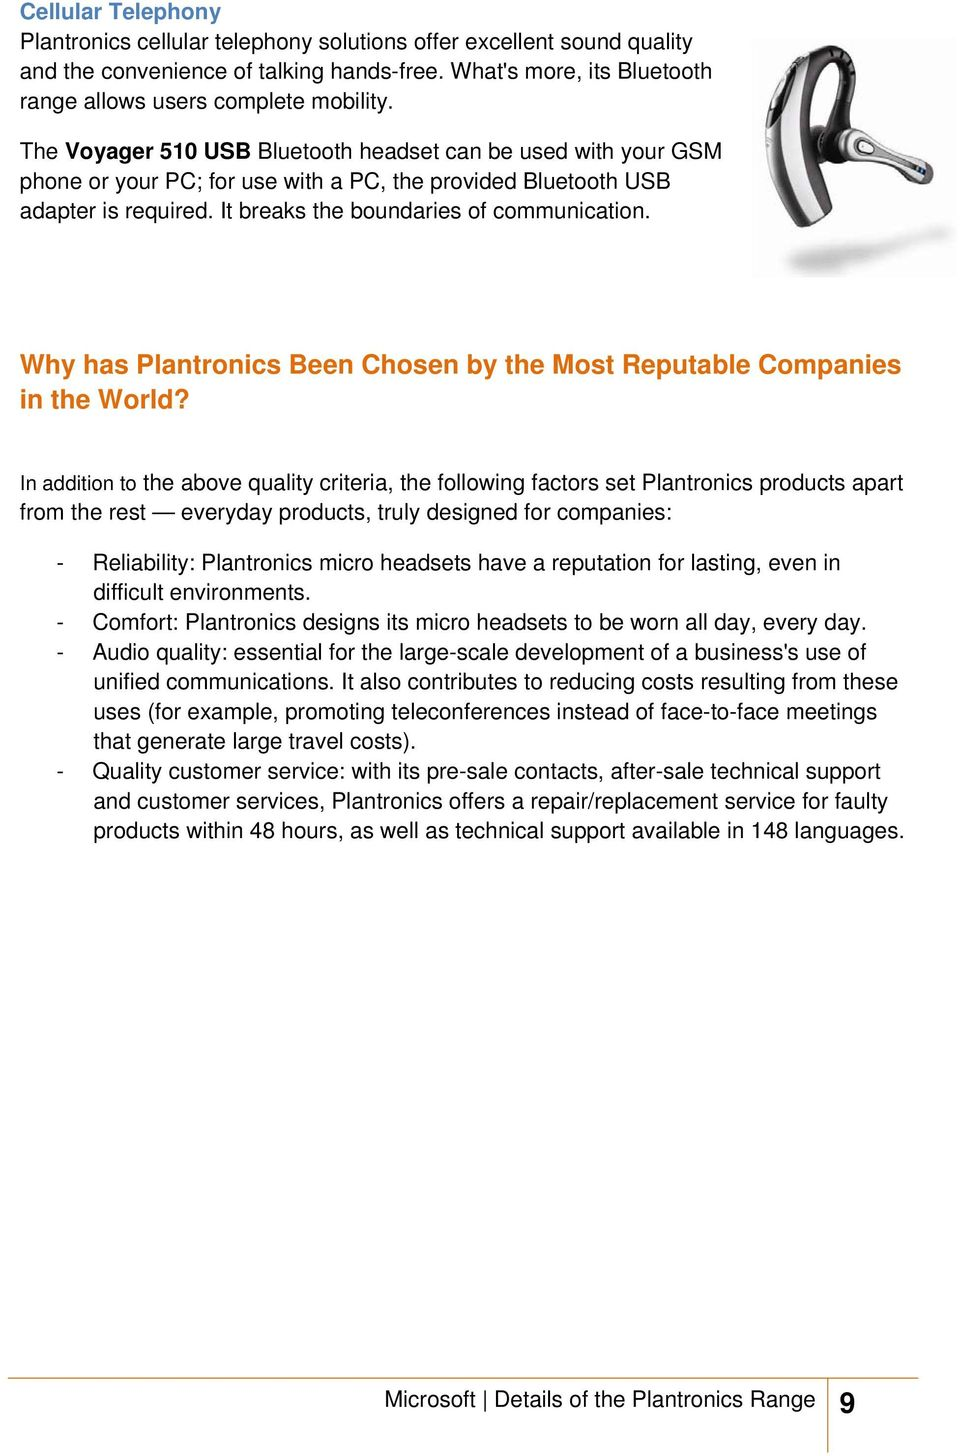 Why has Plantronics Been Chosen by the Most Reputable Companies in the World?